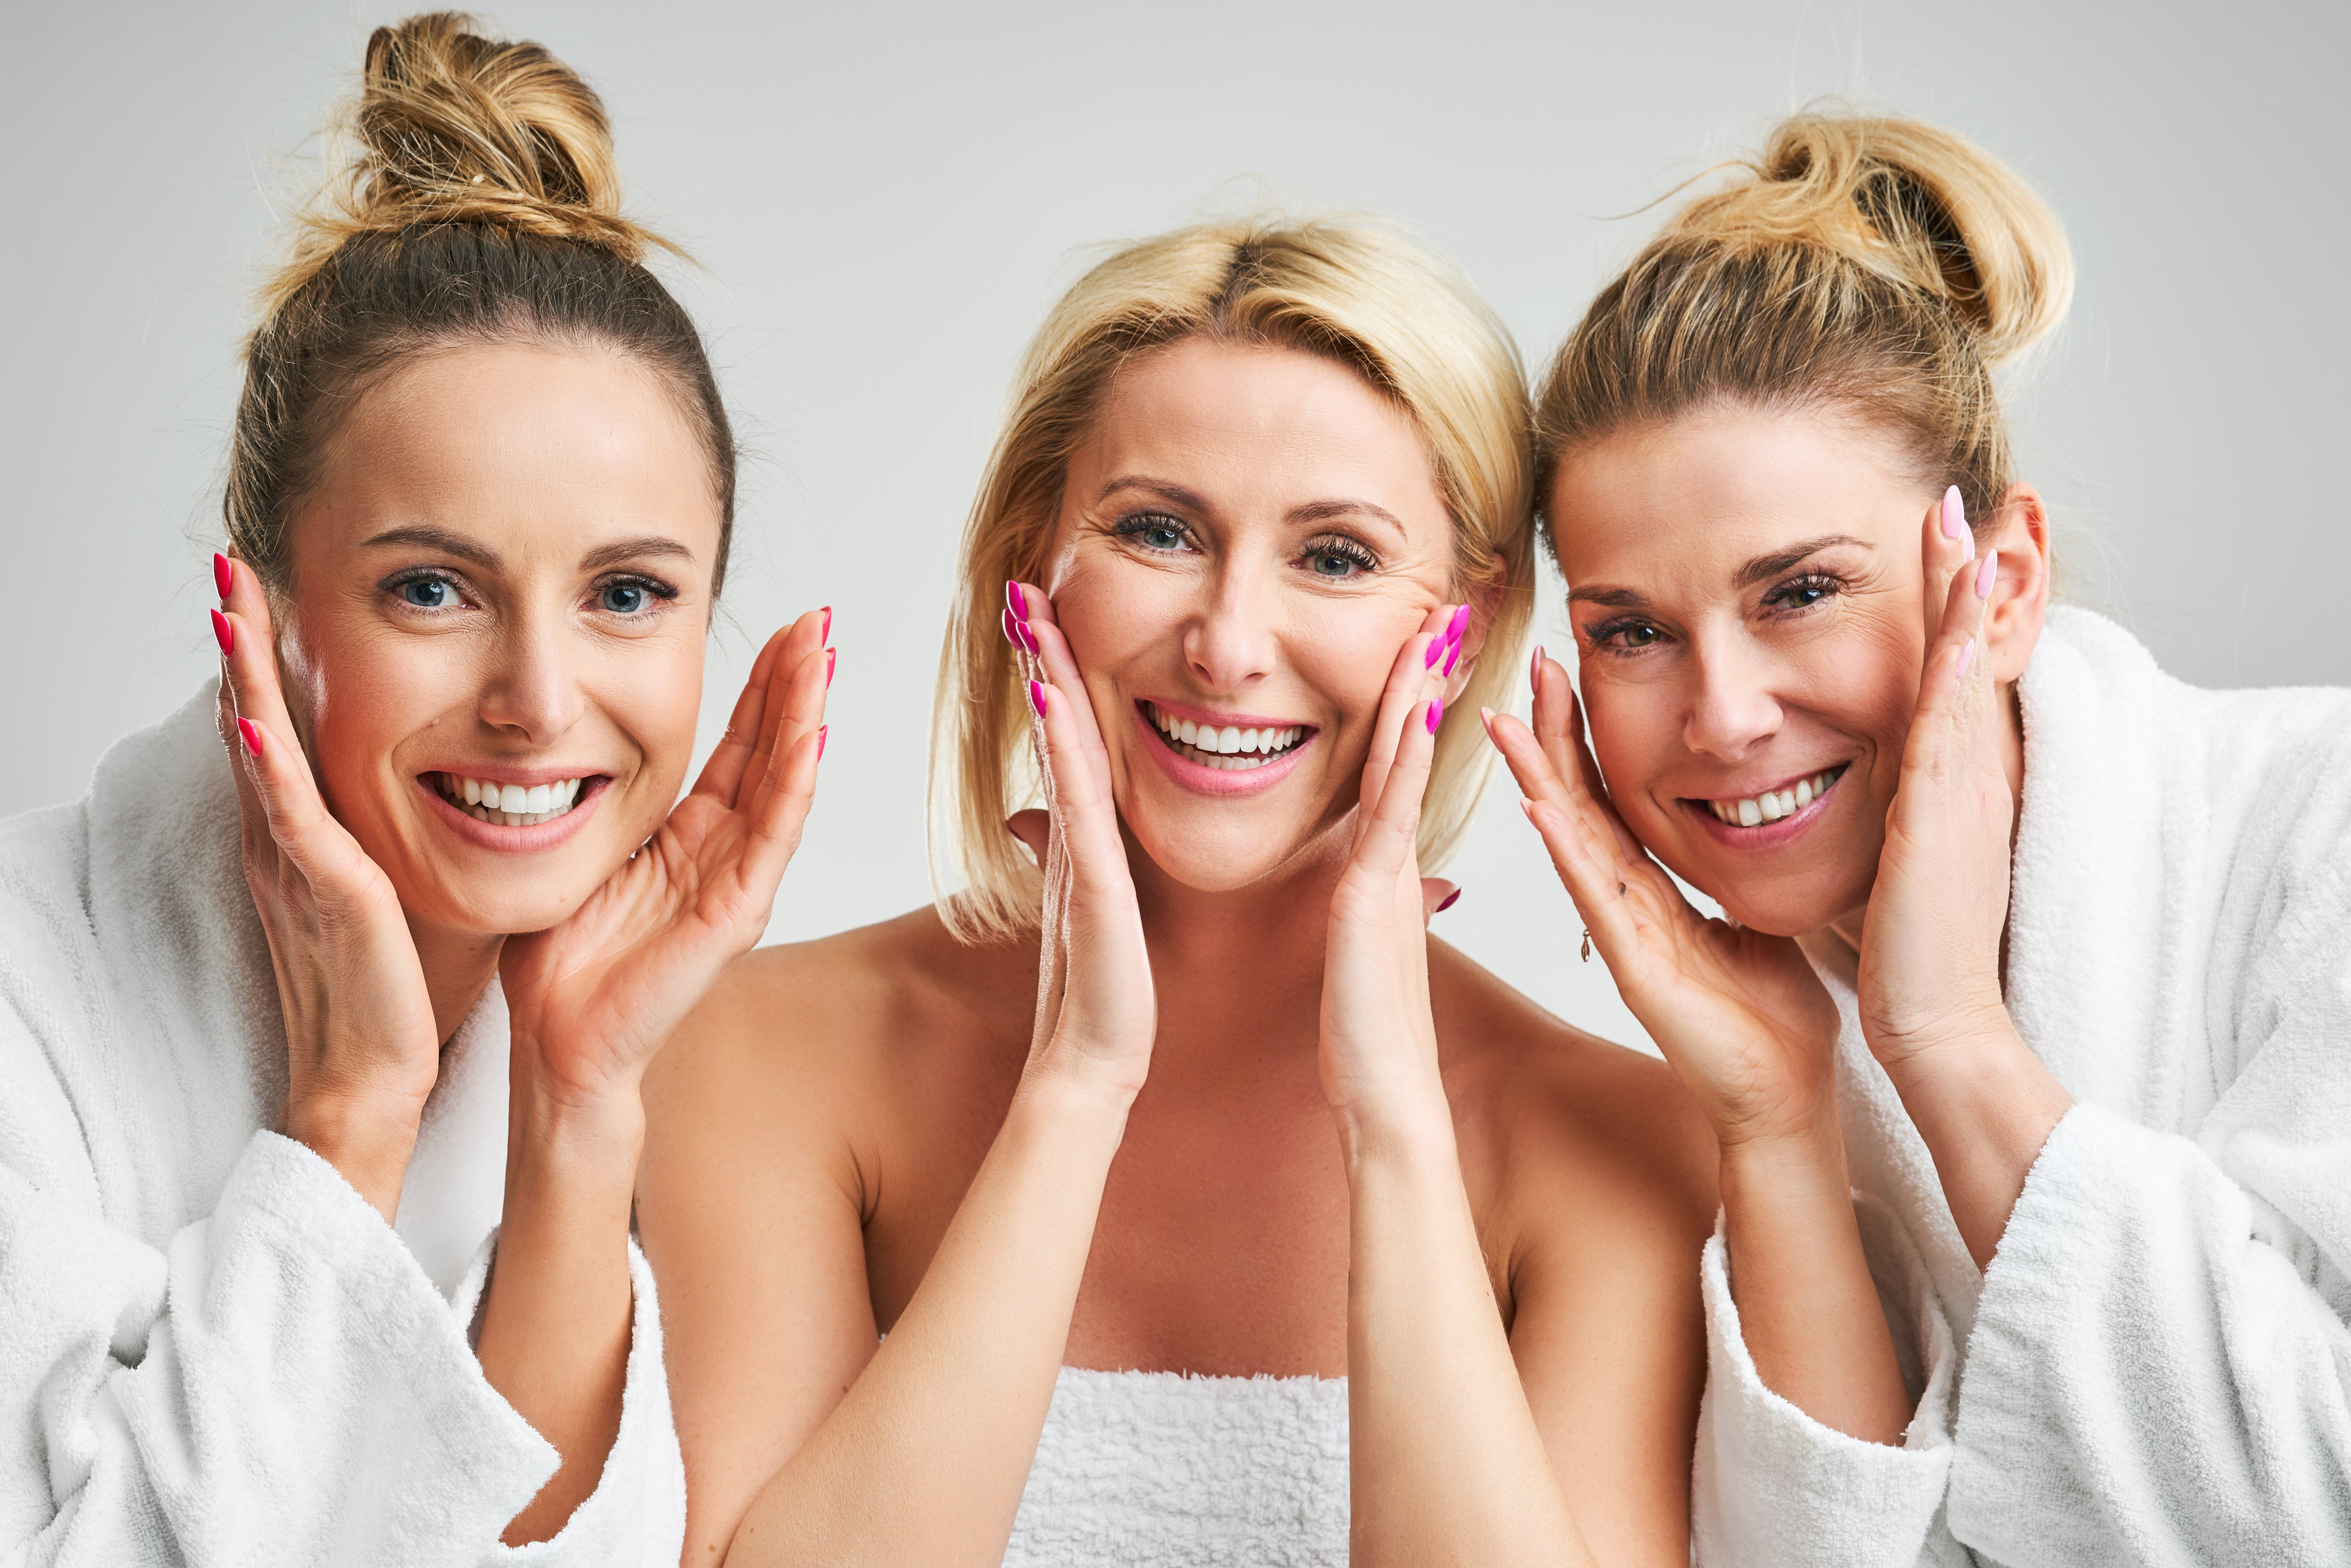 Medical grade skin care products help improve your results